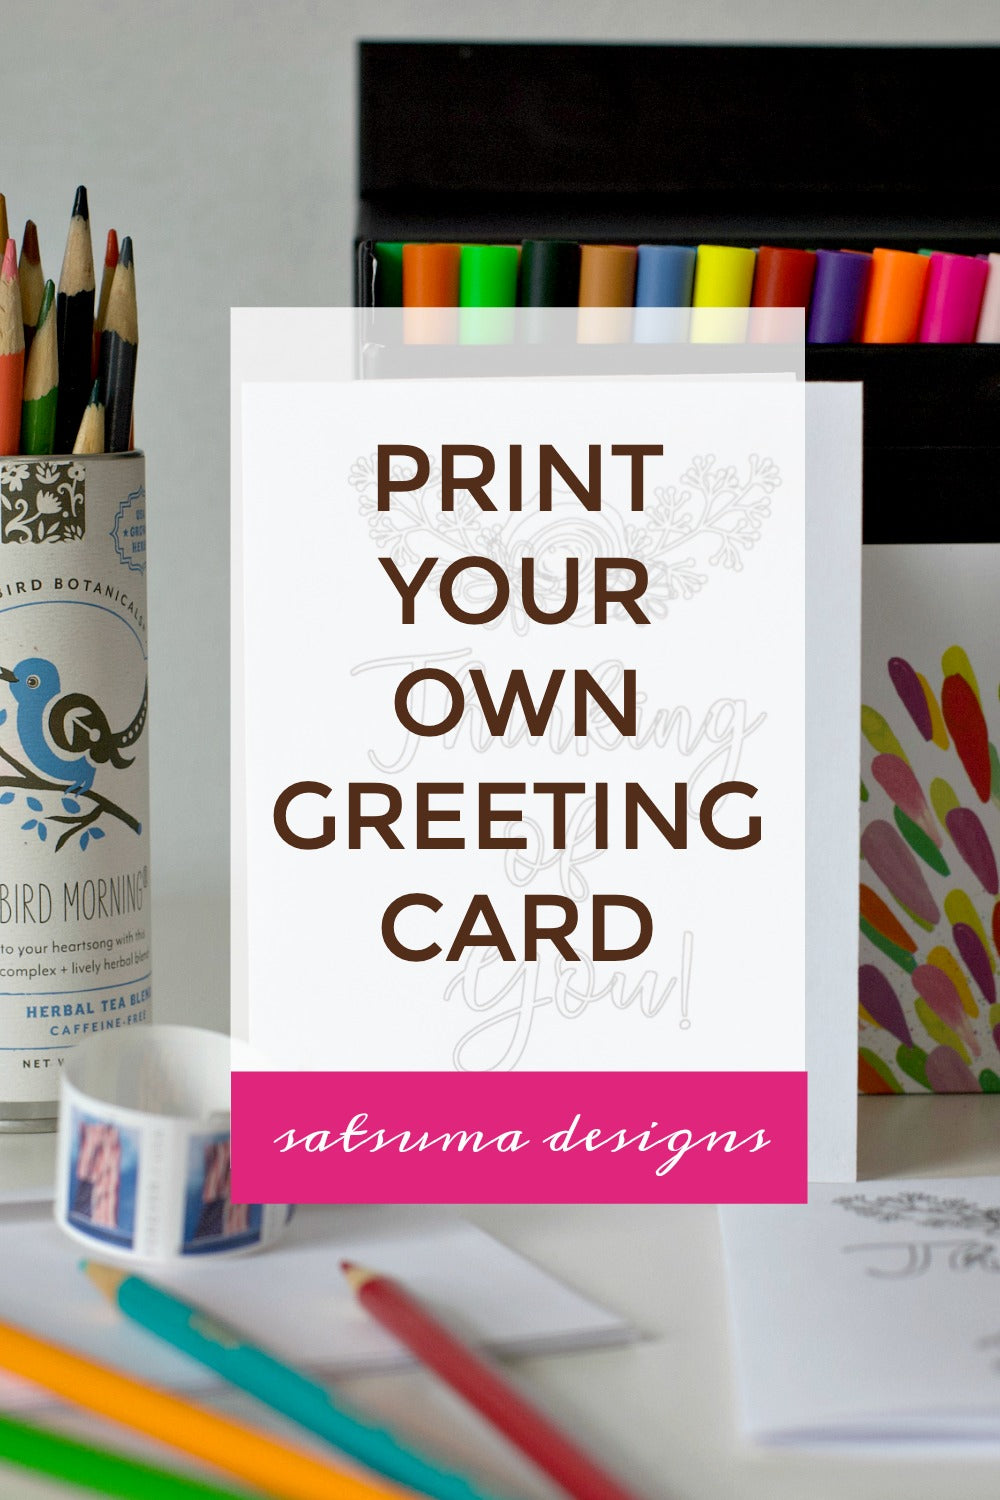 Print Your Own Greeting Card | Send Love Today!